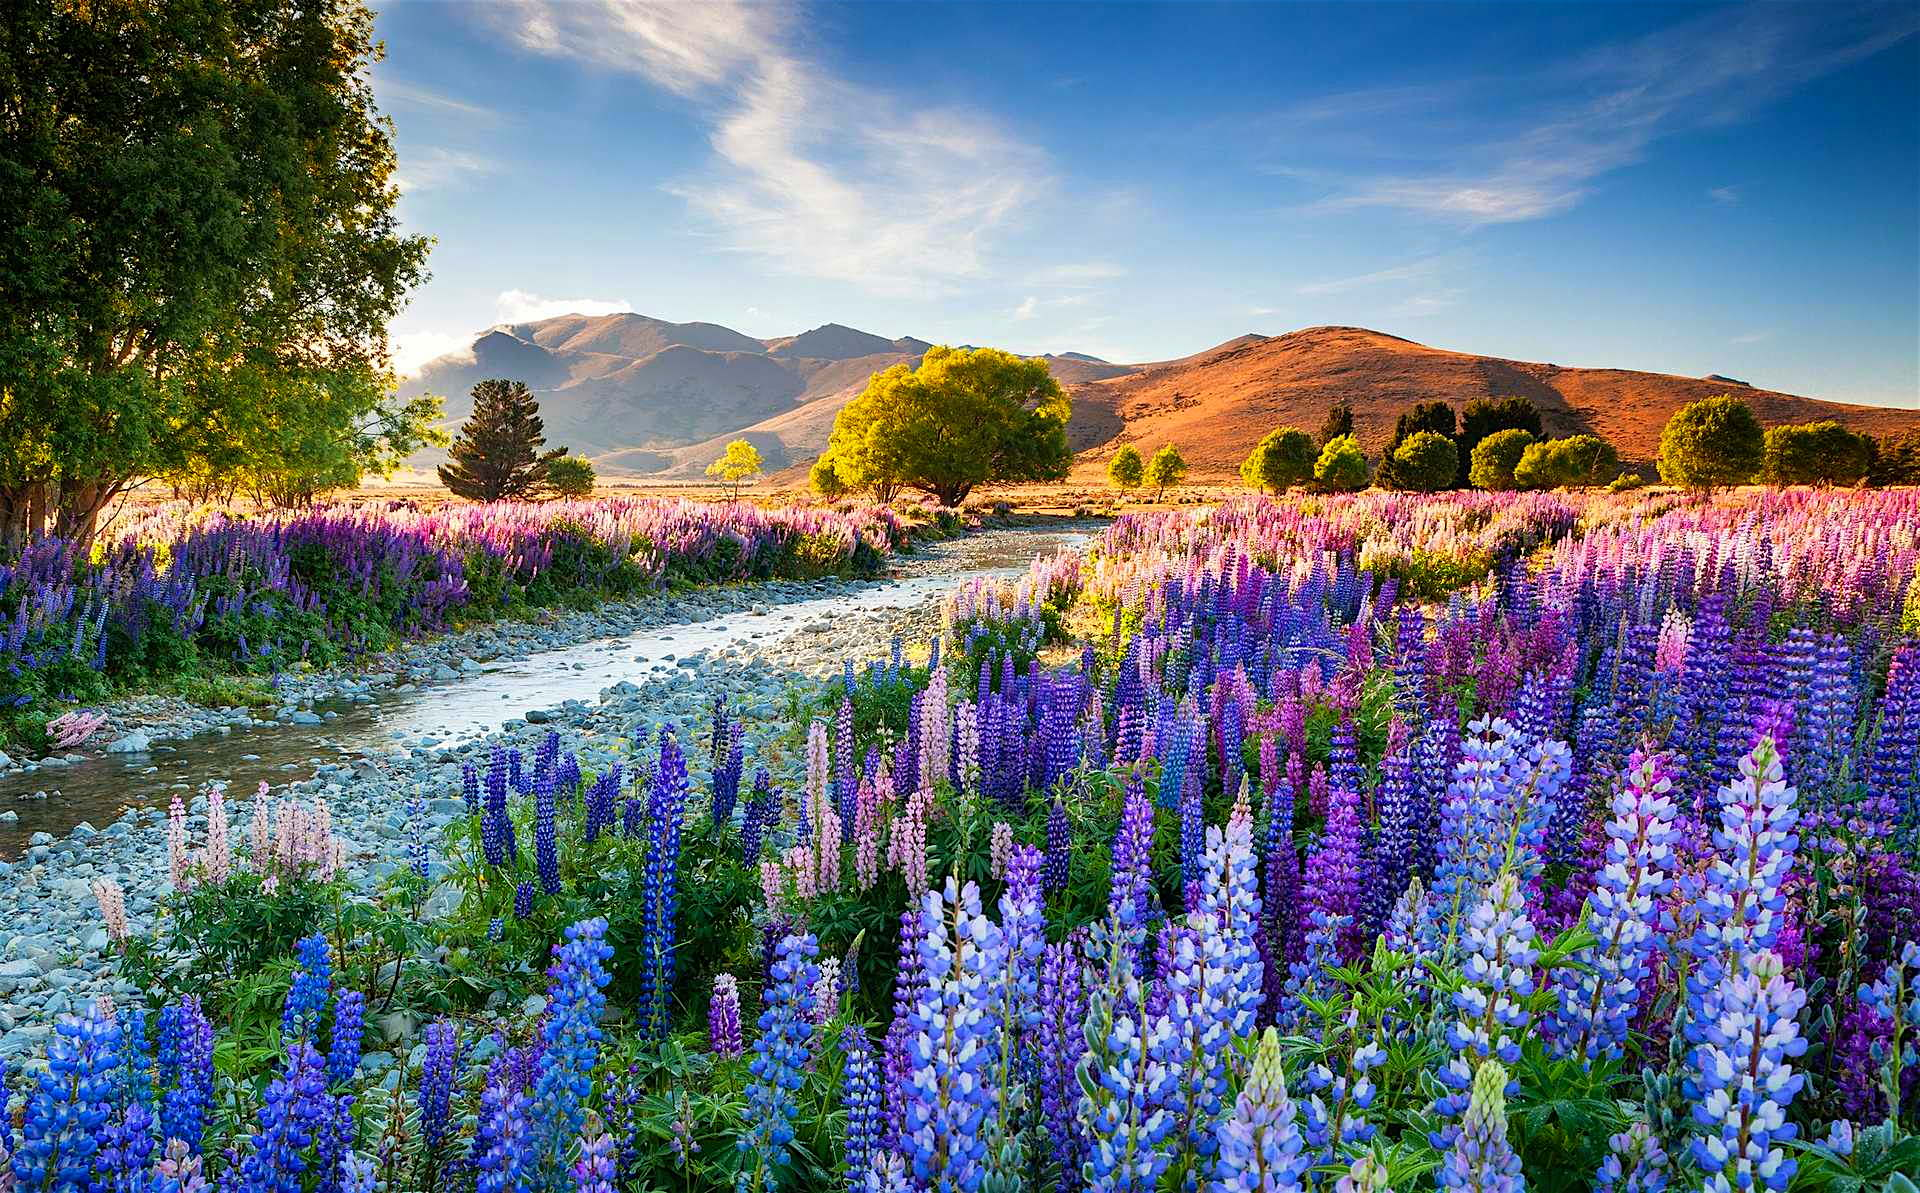 The-overall-winning-entry-was-of-Tekapo-lupins-taken-by-Richard-Bloom.jpg